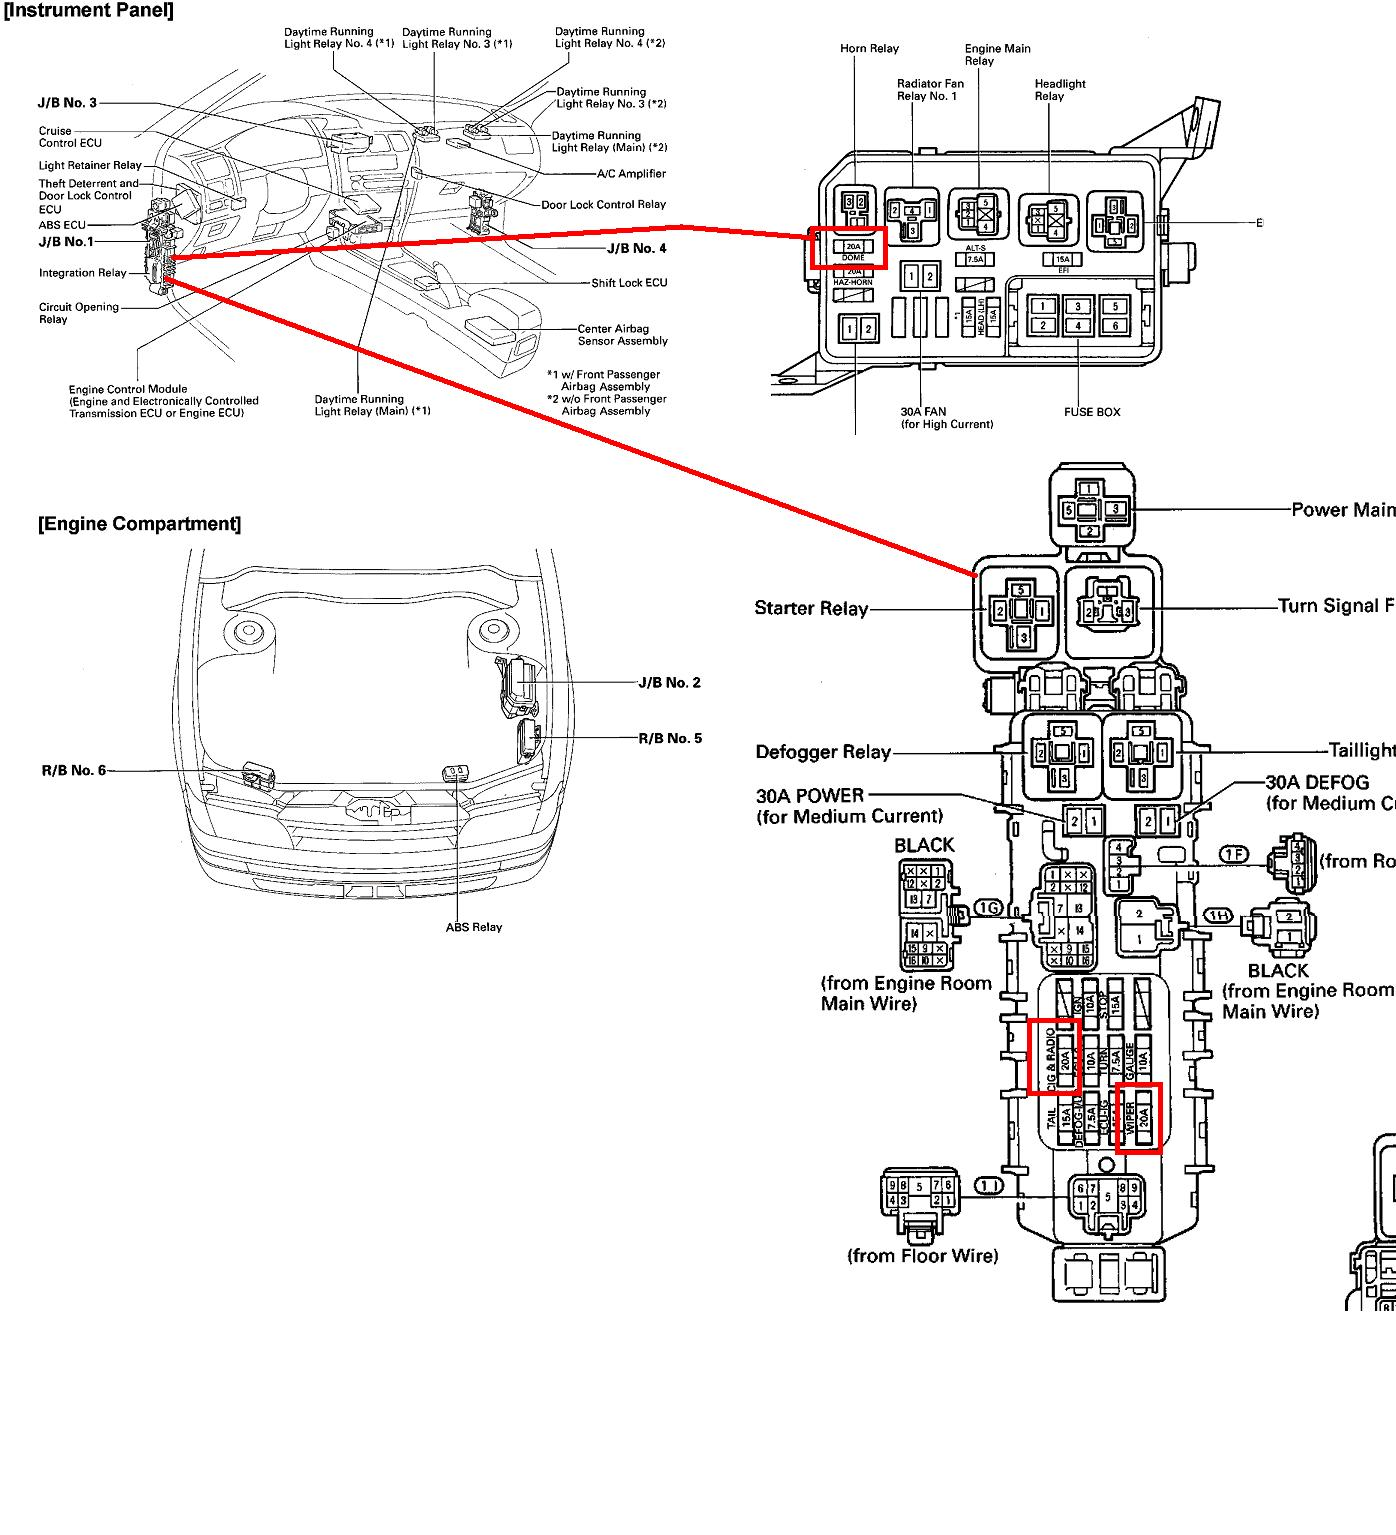 toyota corolla fuse box diagram wiring library 1997 toyota rav4 fuse box 2004 toyota corolla fuse box map [ 1396 x 1535 Pixel ]